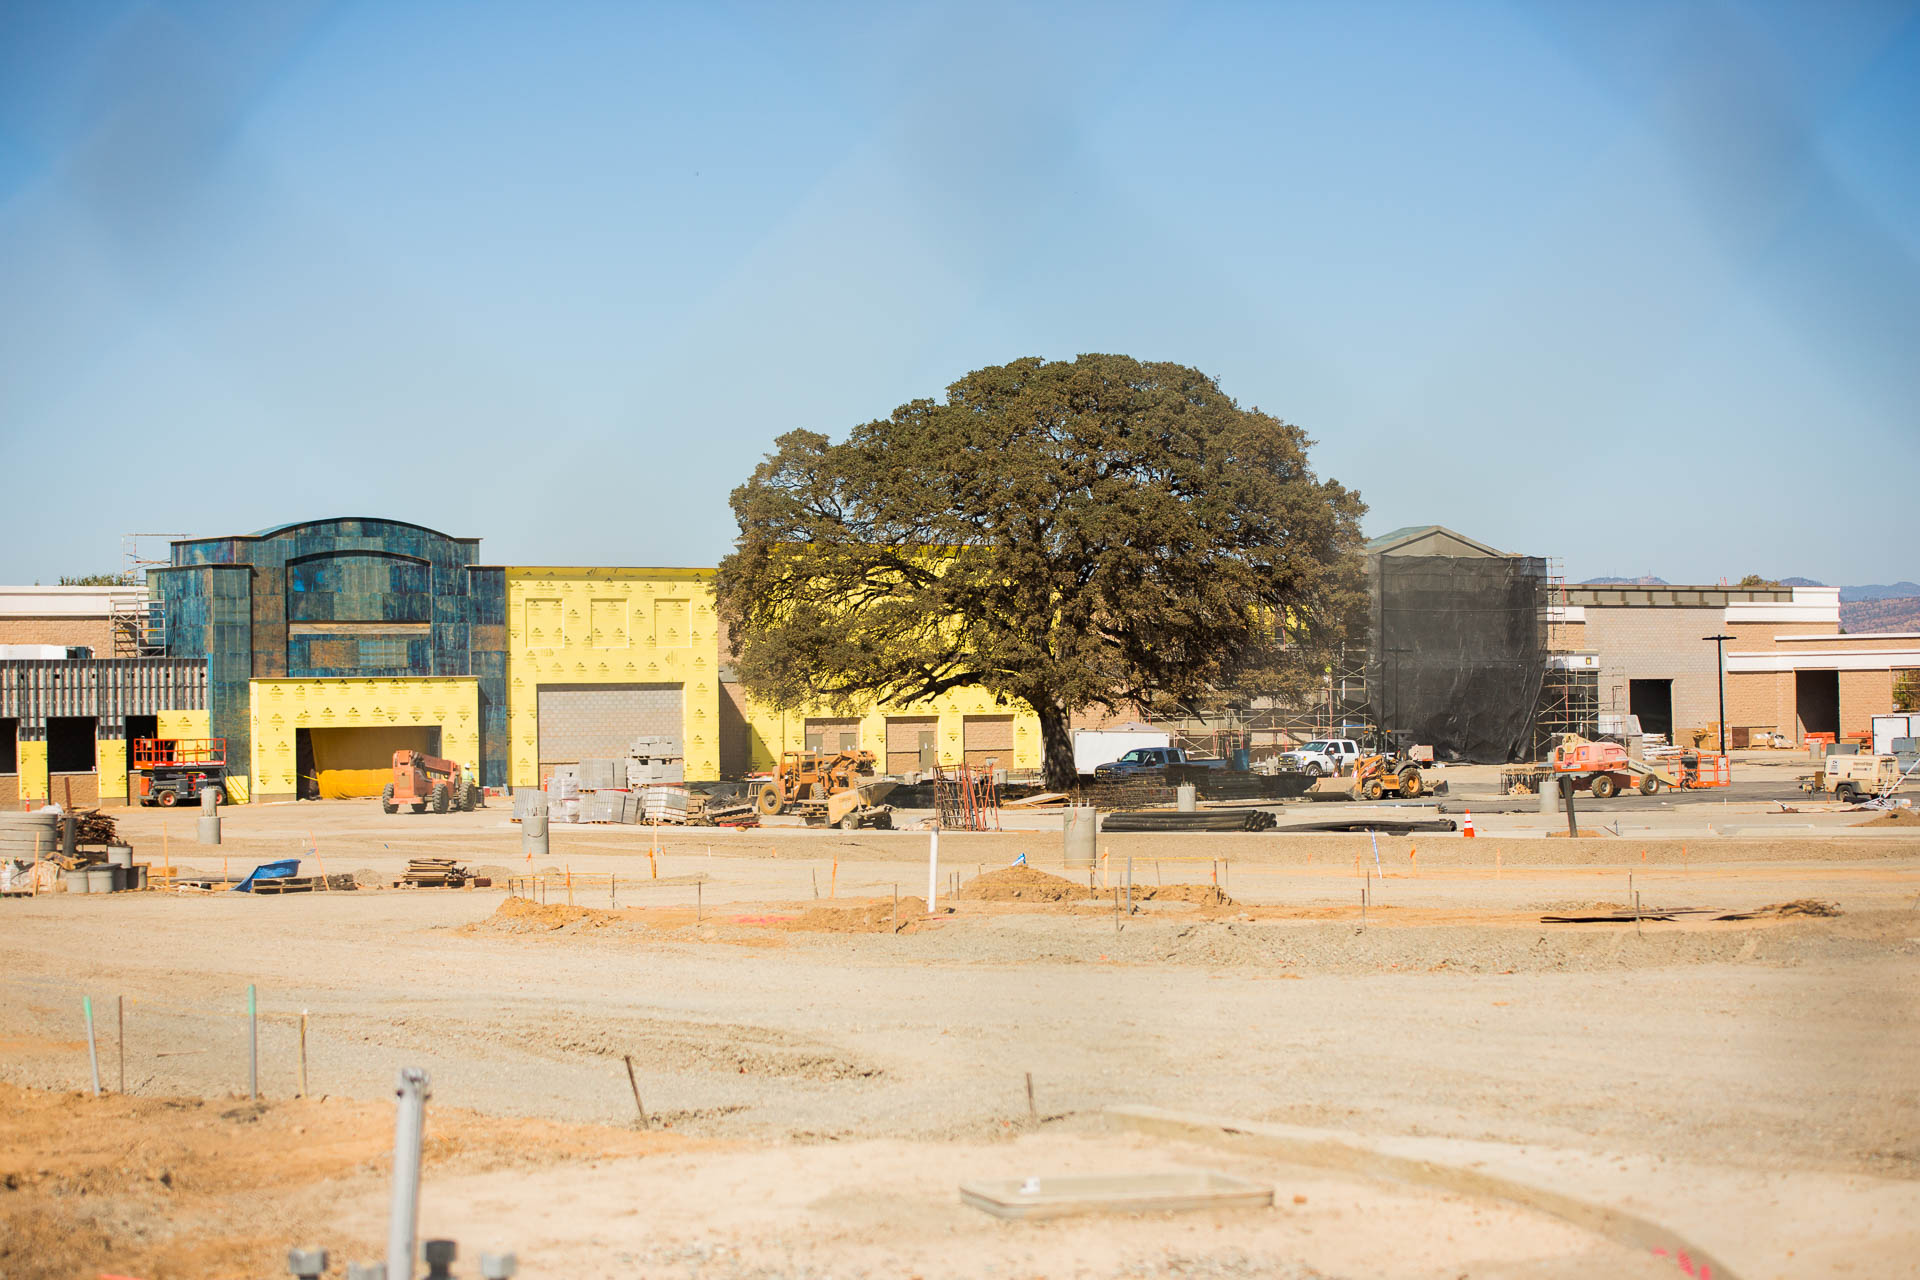 The Red Bluff Walmart Supercenter is well underway